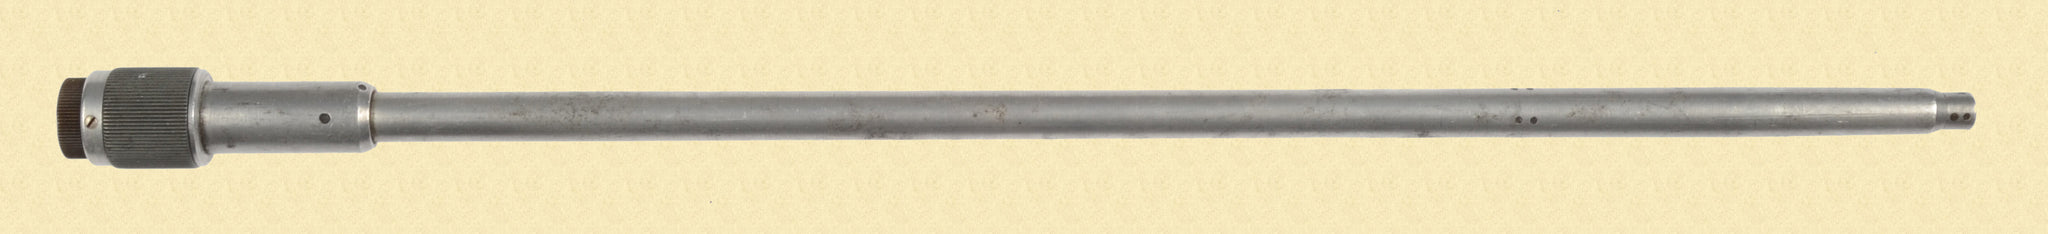 GERMAN WW2 K98k RIFLE BORE SIGHTING DEVICE